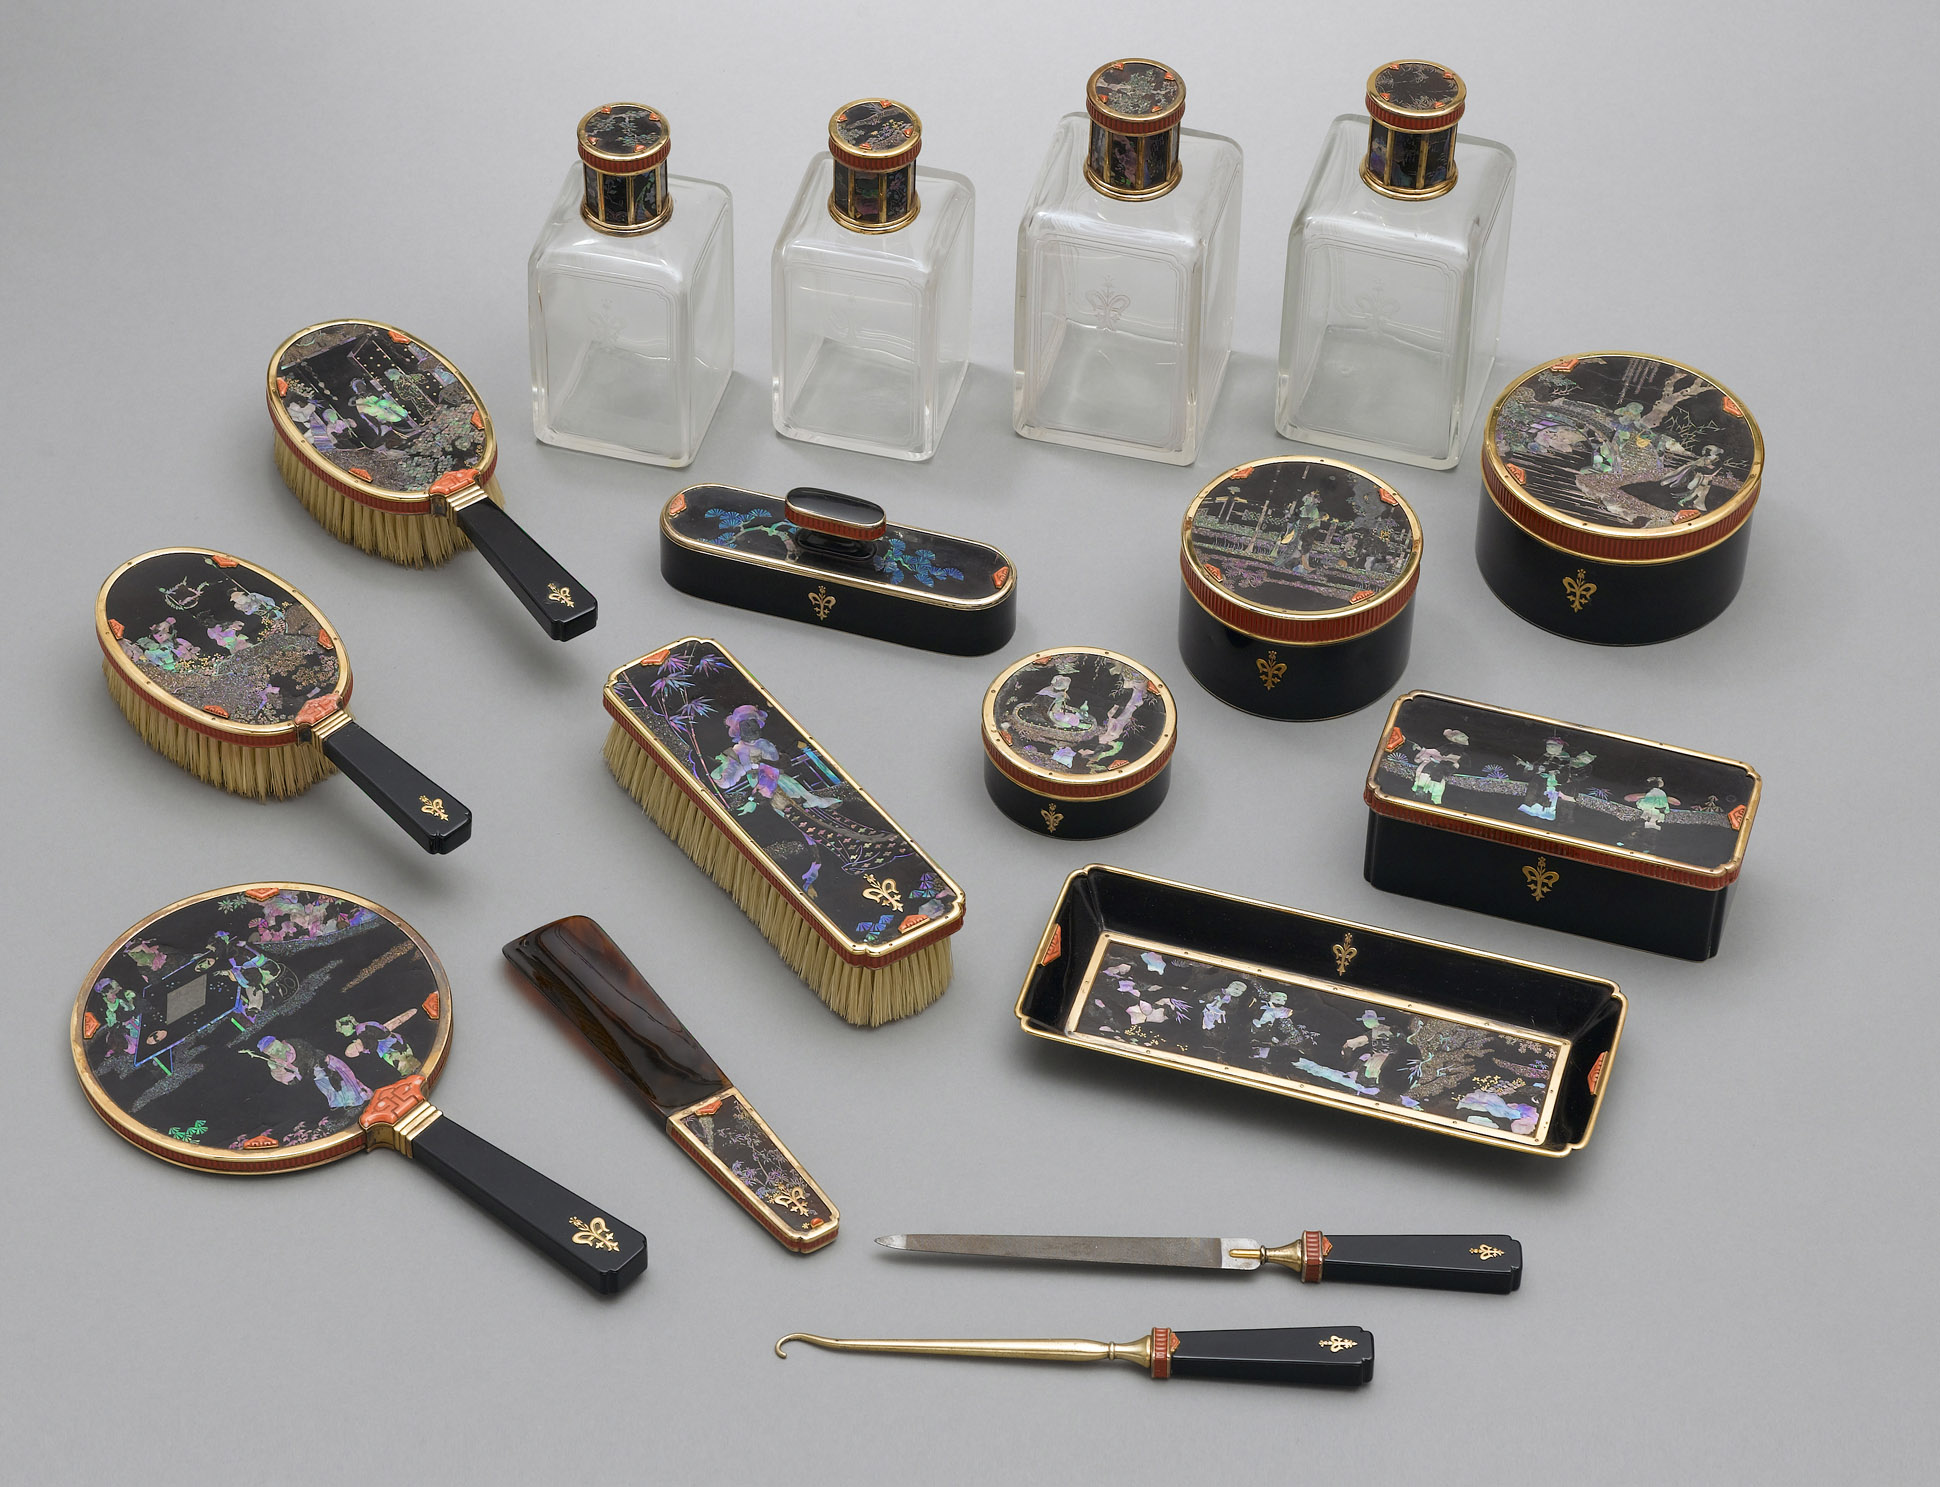 Vanity set from the collection of Barbra Streisand